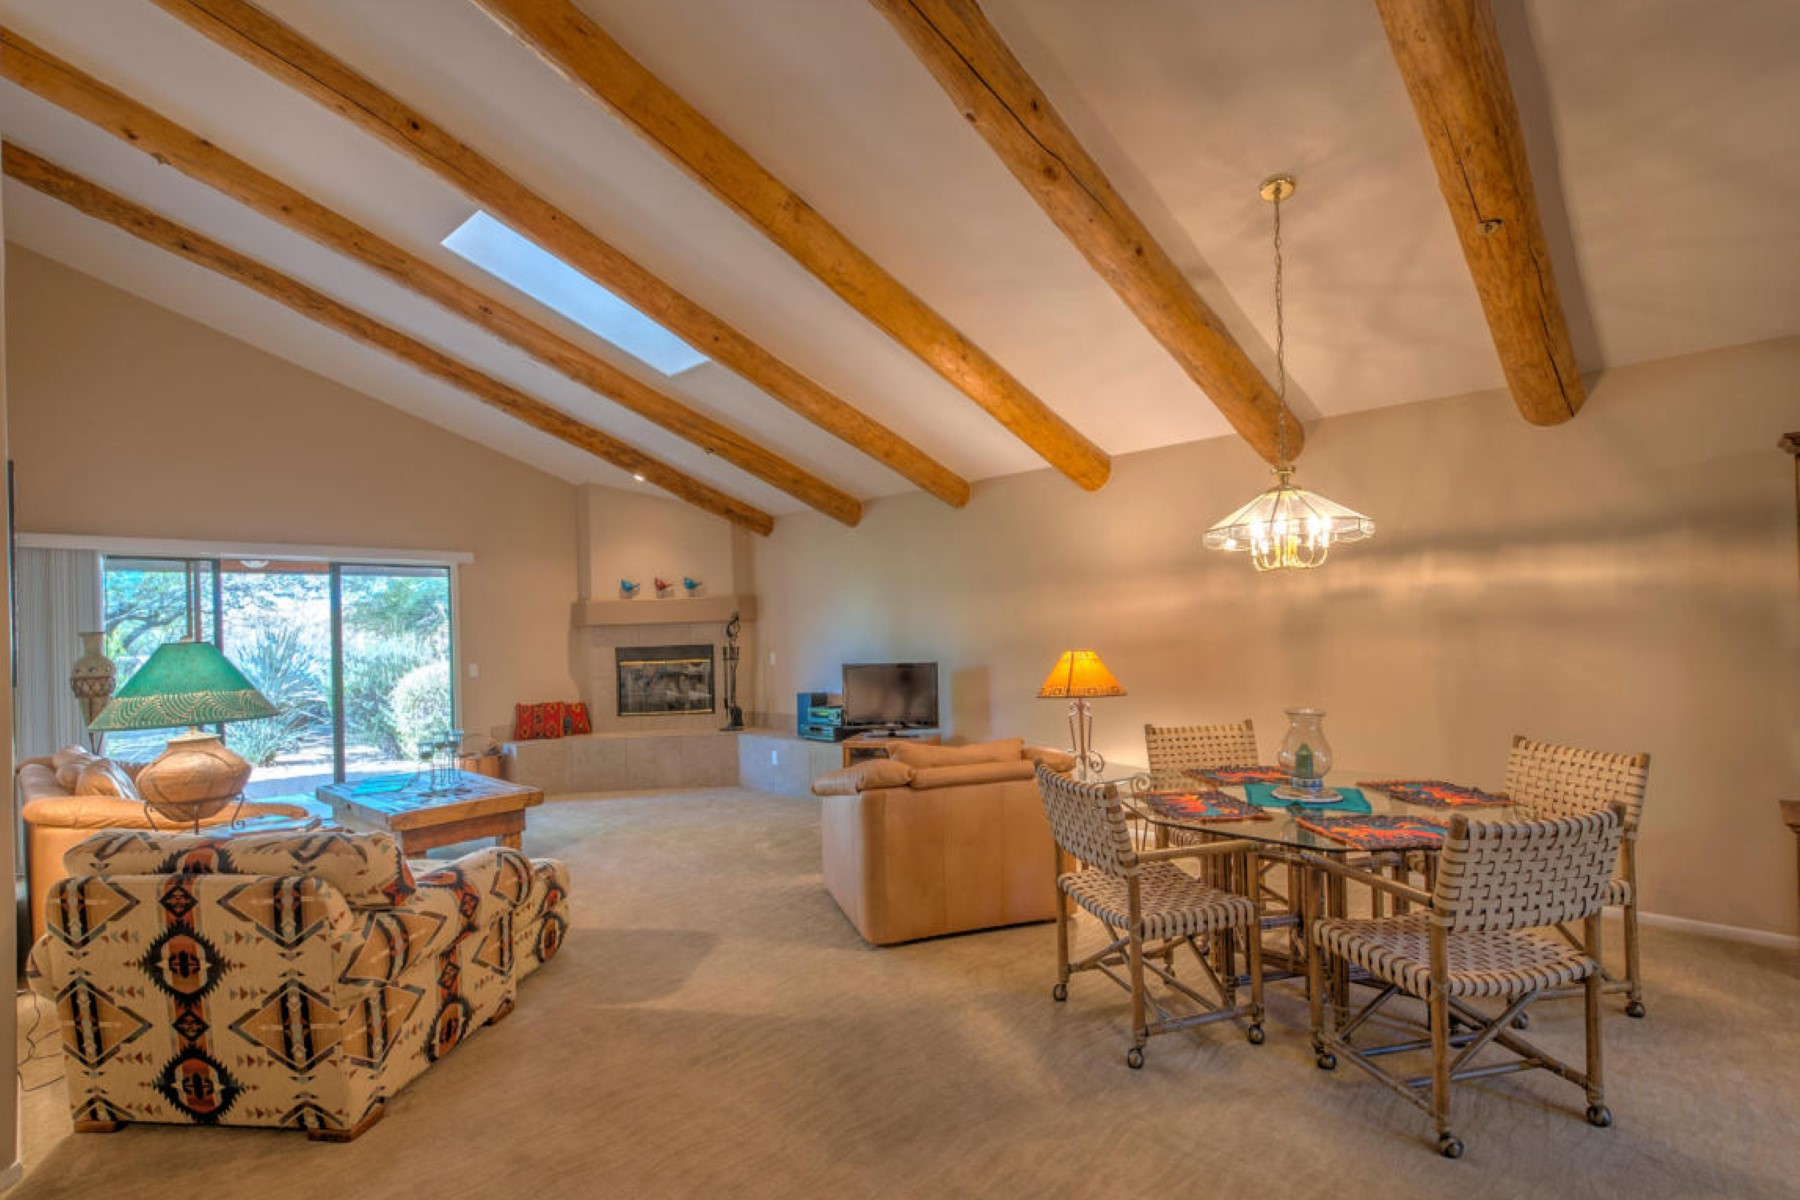 Property For Sale at Charming southwest home in Scottsdale